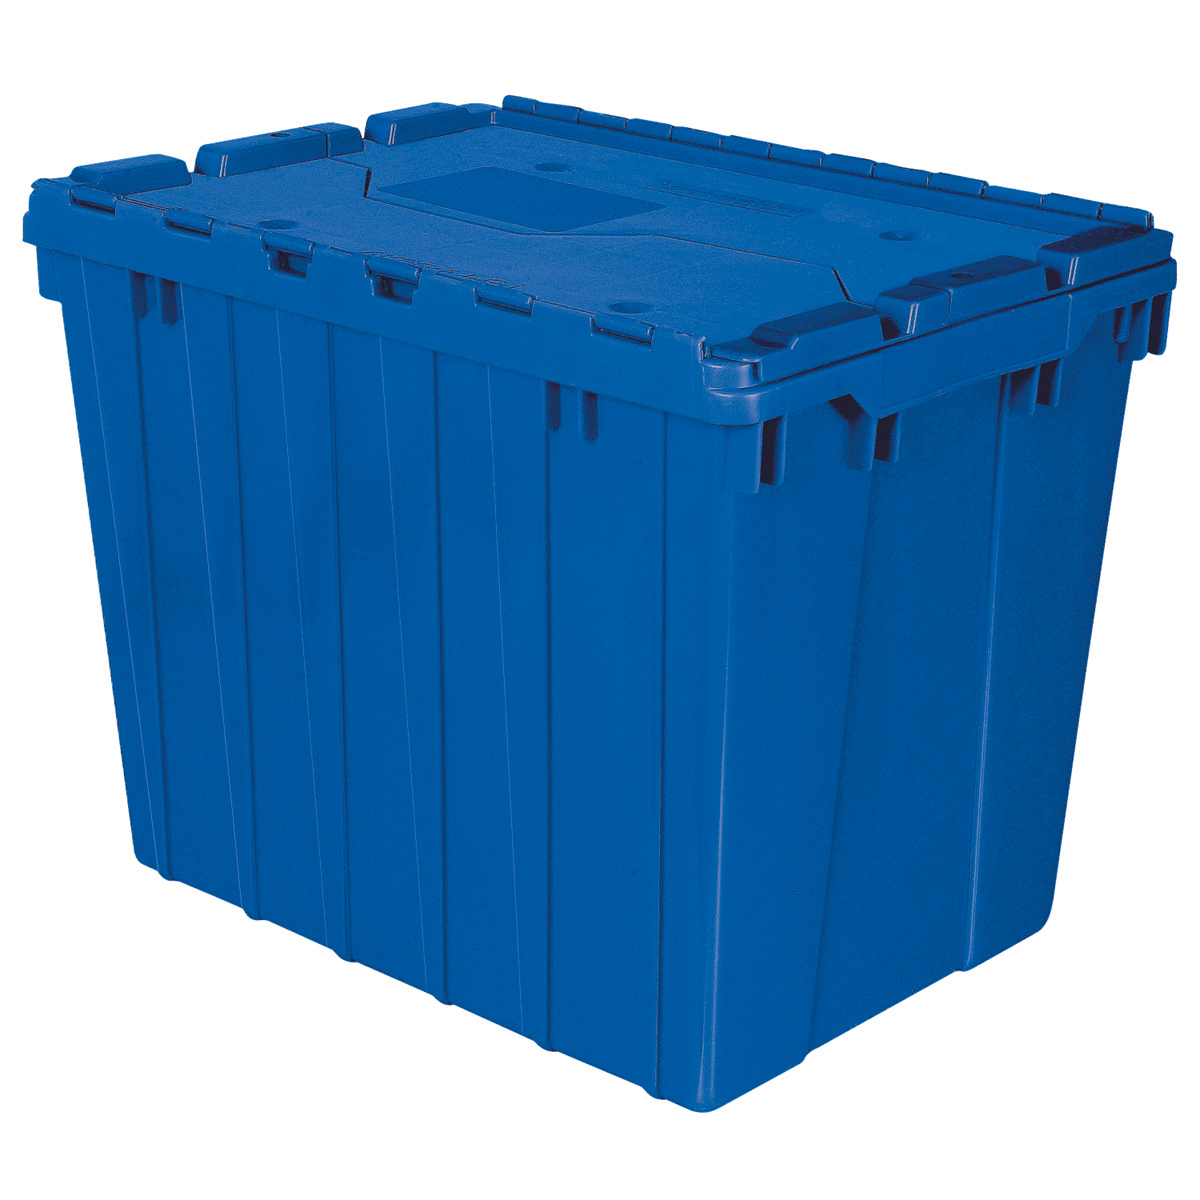 Attached Lid Container 17 gal, 21-1/2 x 15 x 17, Blue (39170BLUE).  This item sold in carton quantities of 3.